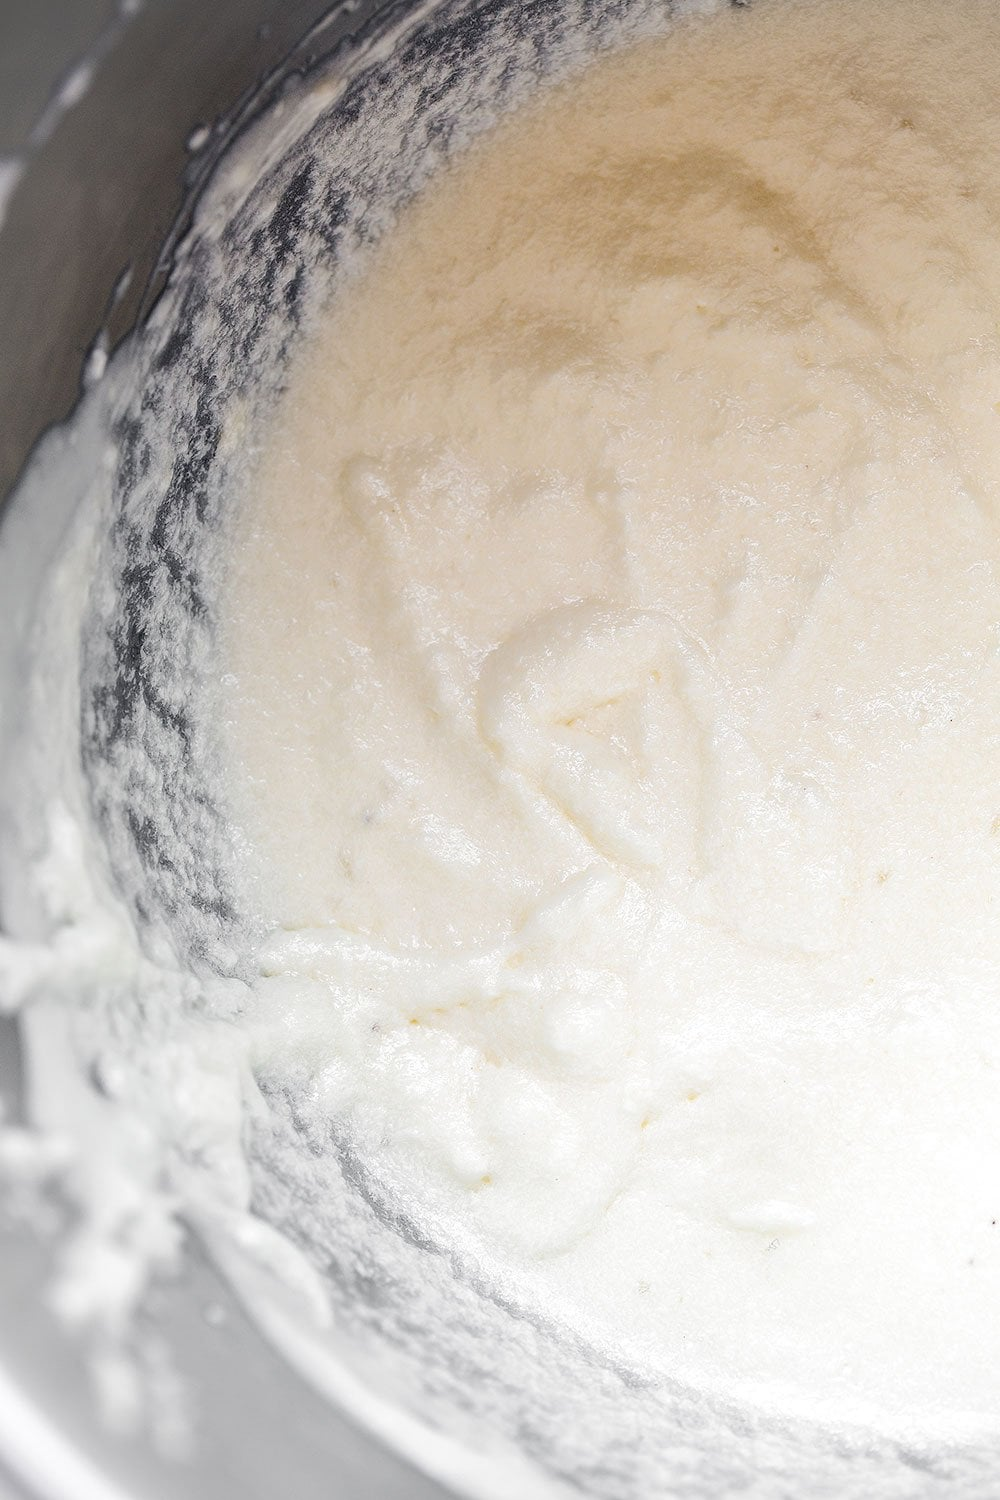 How to save Swiss Meringue Buttercream when it curdles